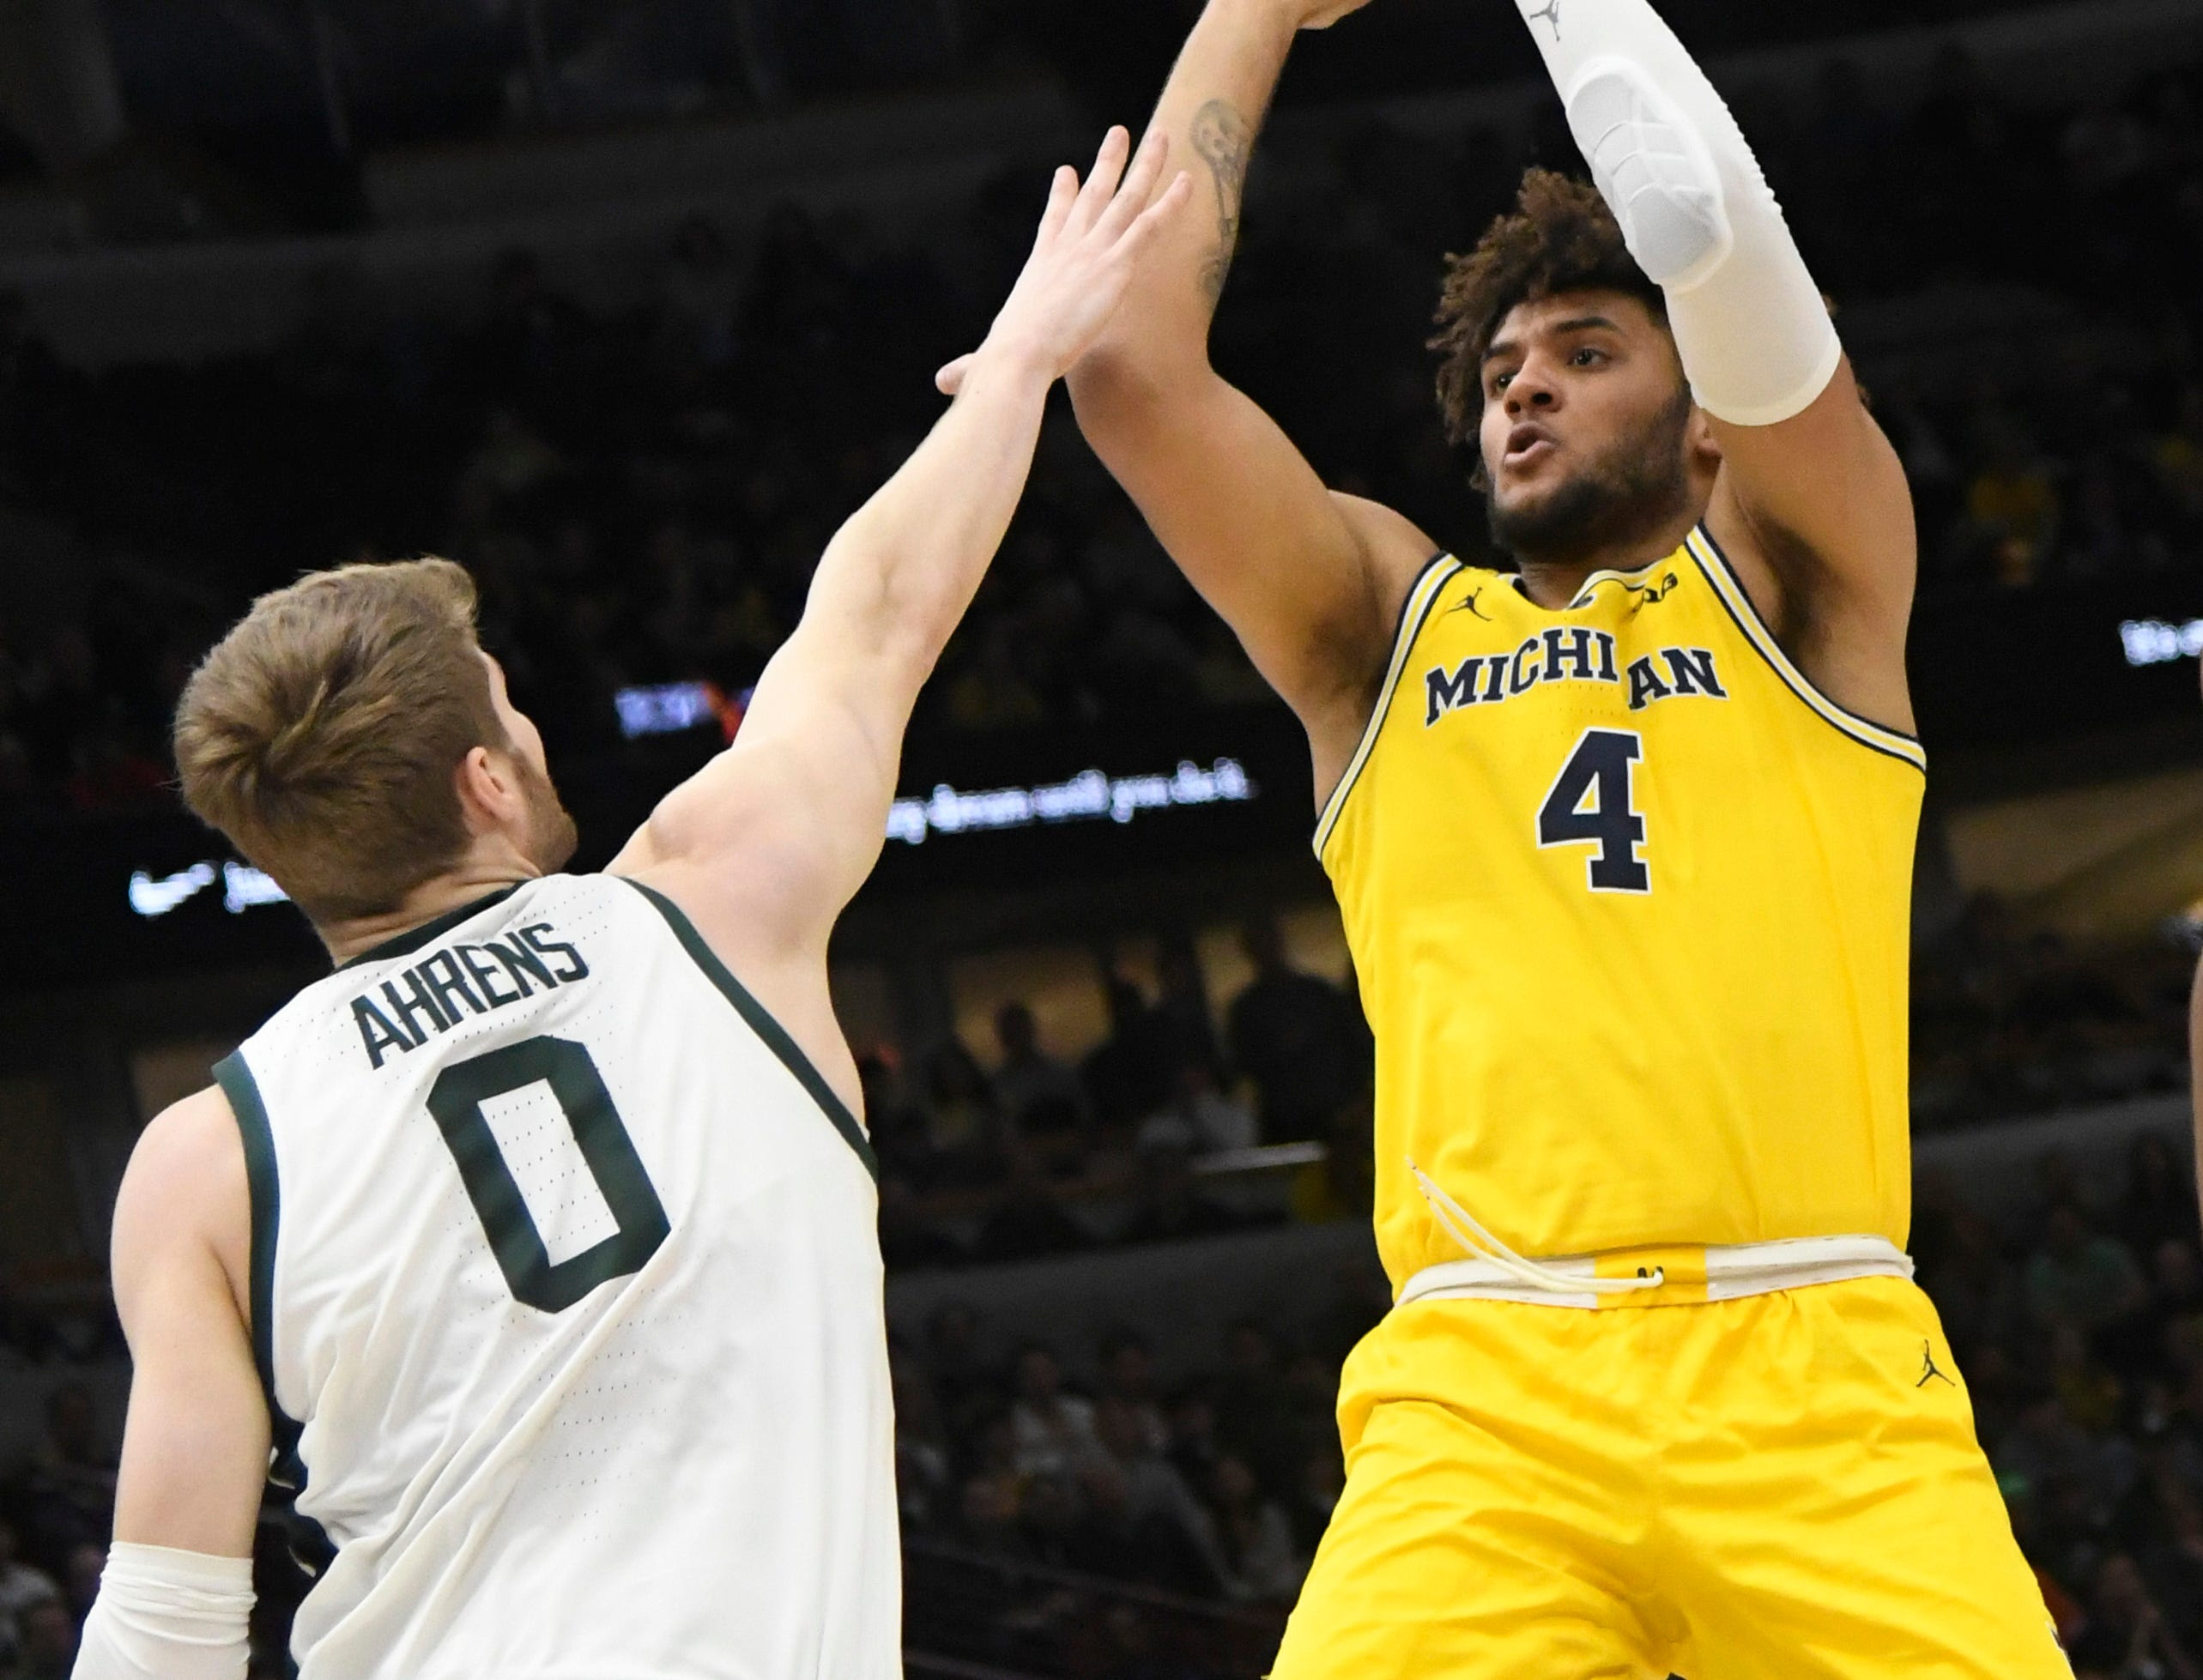 Michigan Wolverines forward Isaiah Livers (4) shoots over Michigan State Spartans forward Kyle Arenas (0) during the first half in the Big Ten conference tournament at United Center.